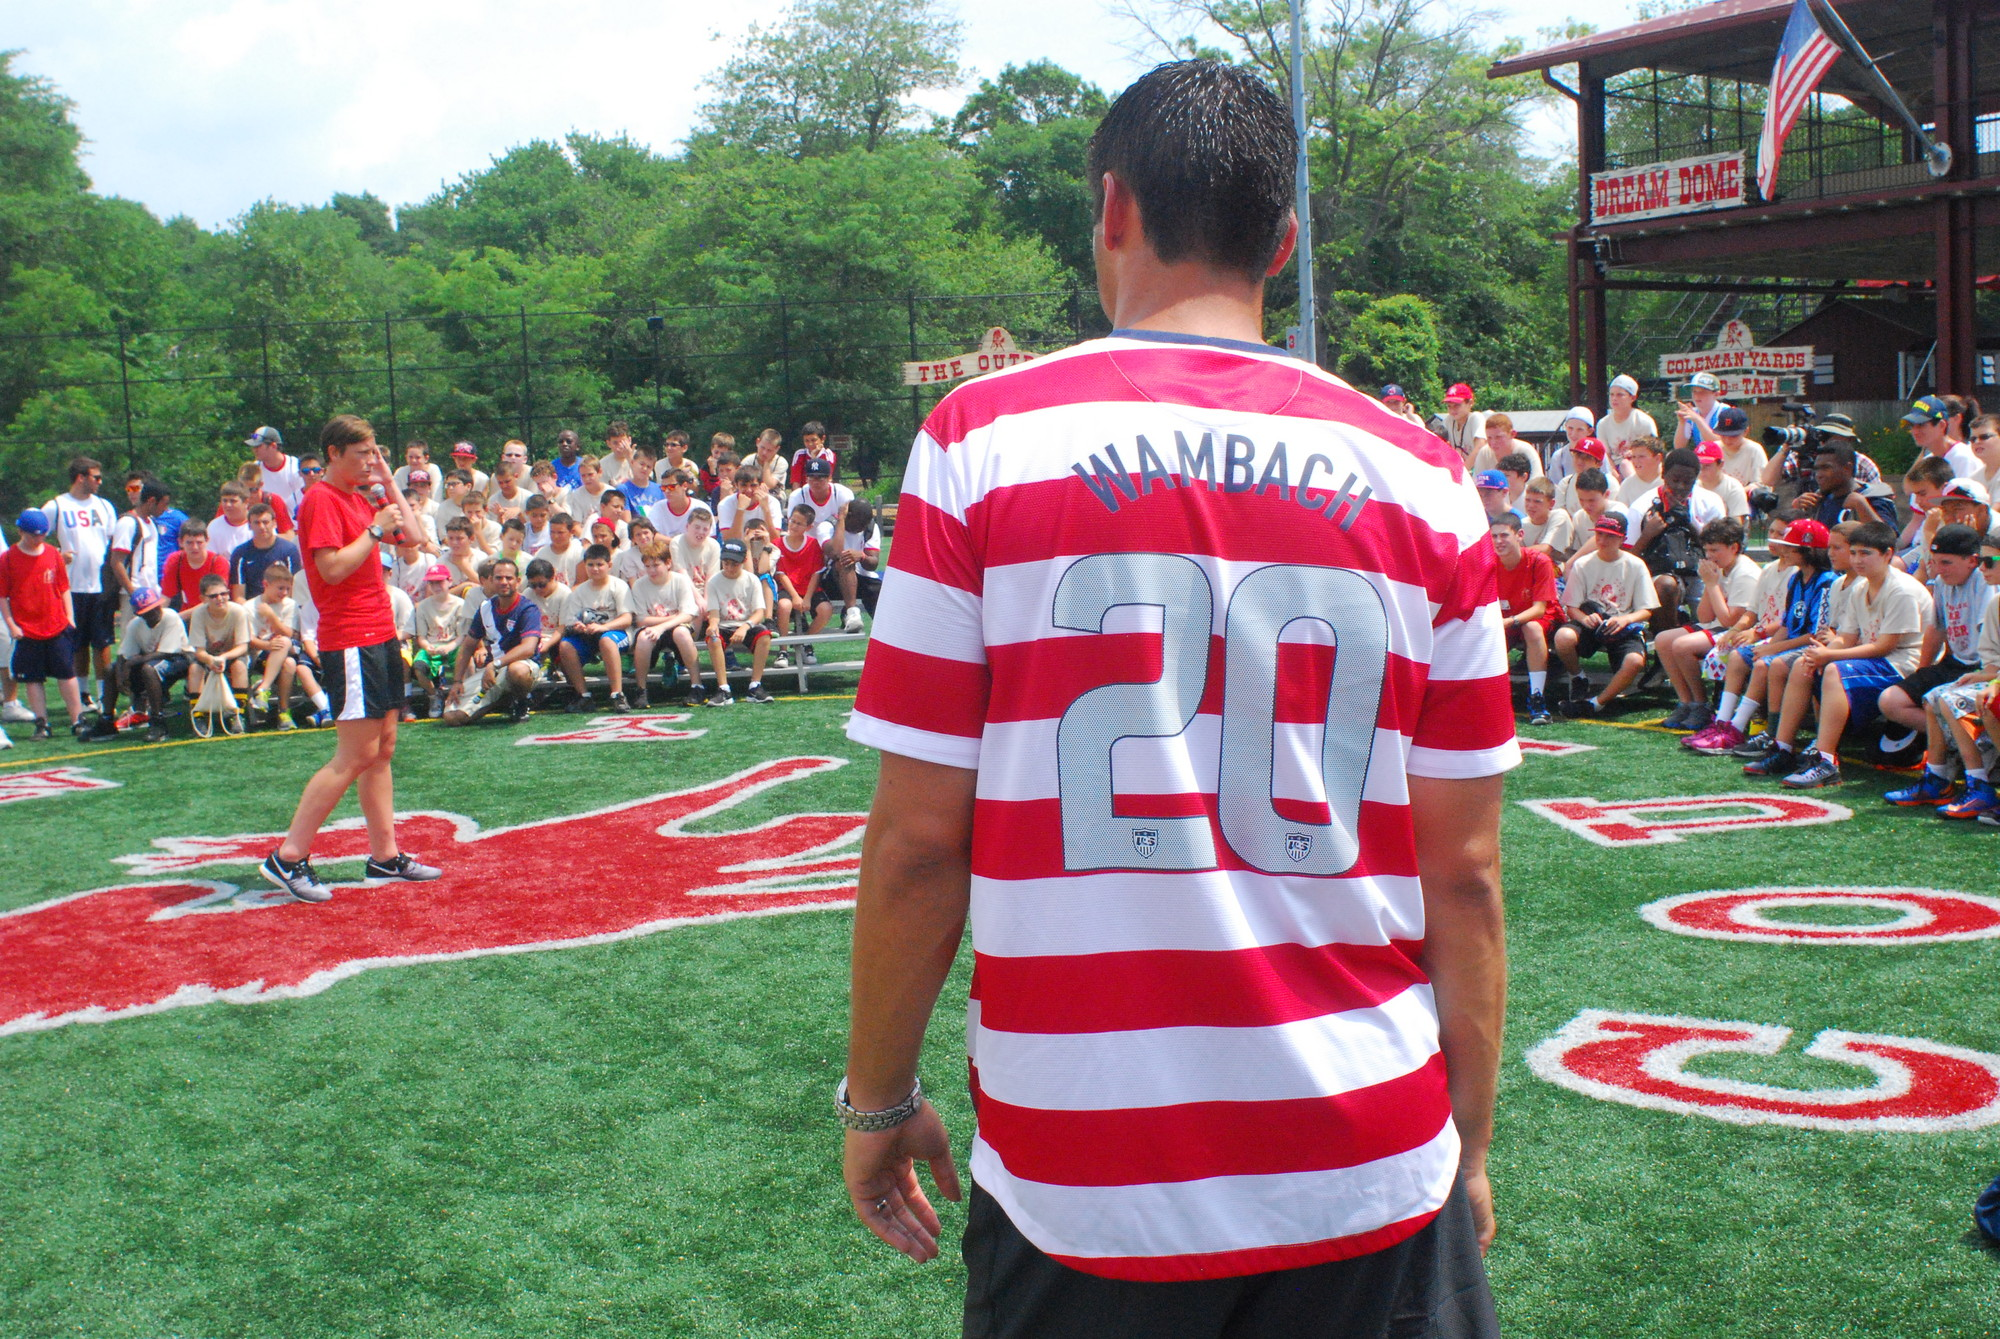 Coleman Country Camp Director Ross Coleman, front, wore a Wambach replica jersey to celebrate the soccer phenom.